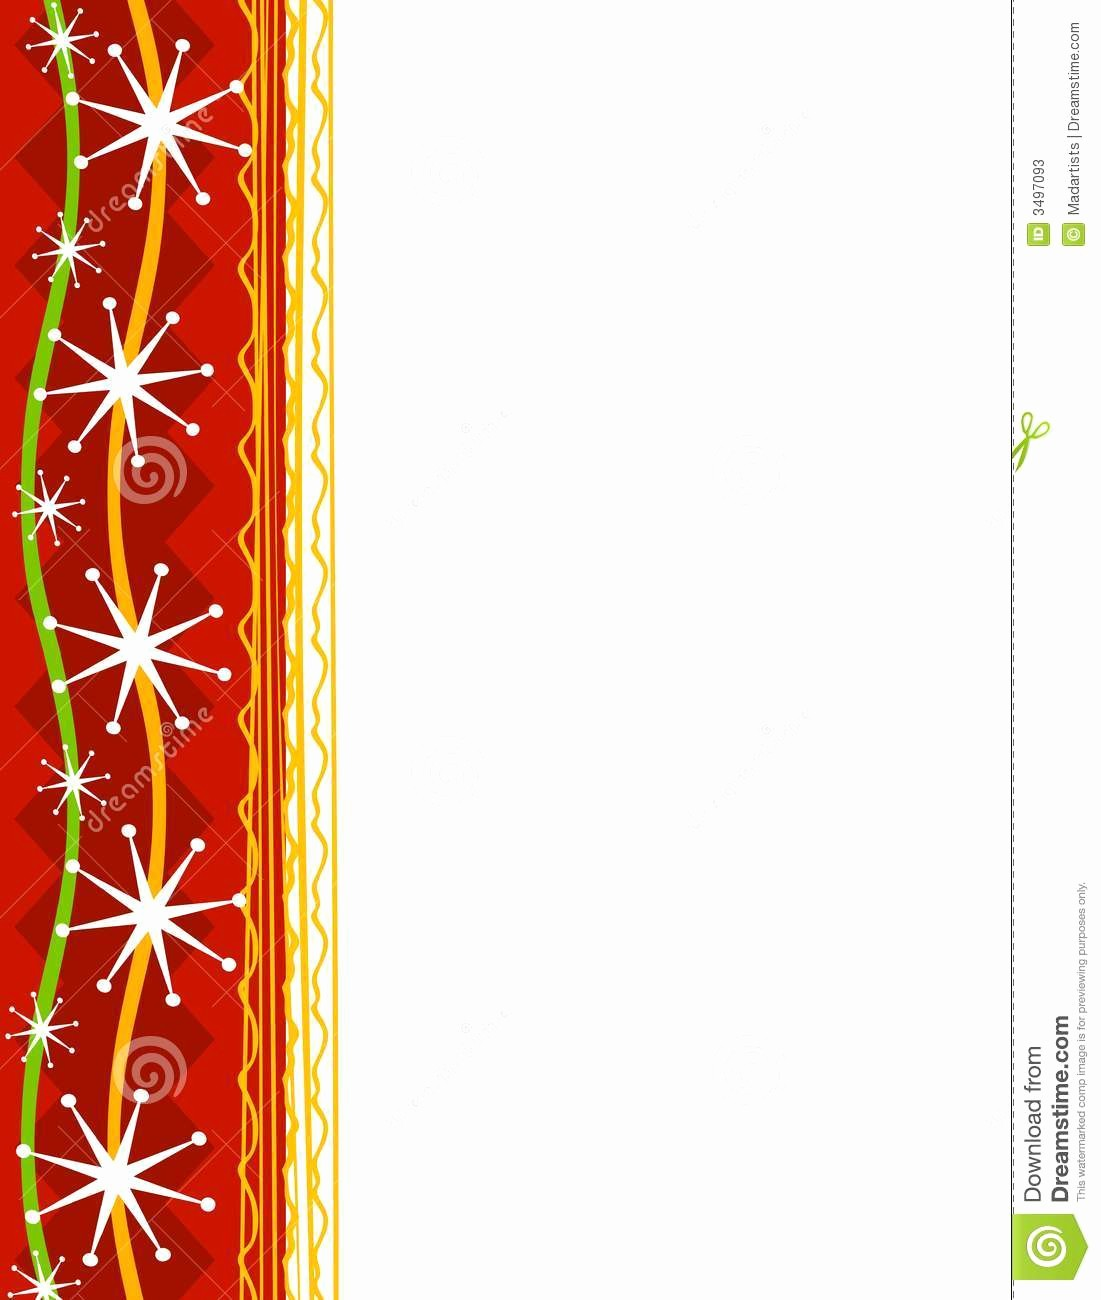 Festive Borders for Word Document Lovely Decorative Christmas Border 1 Stock Illustration